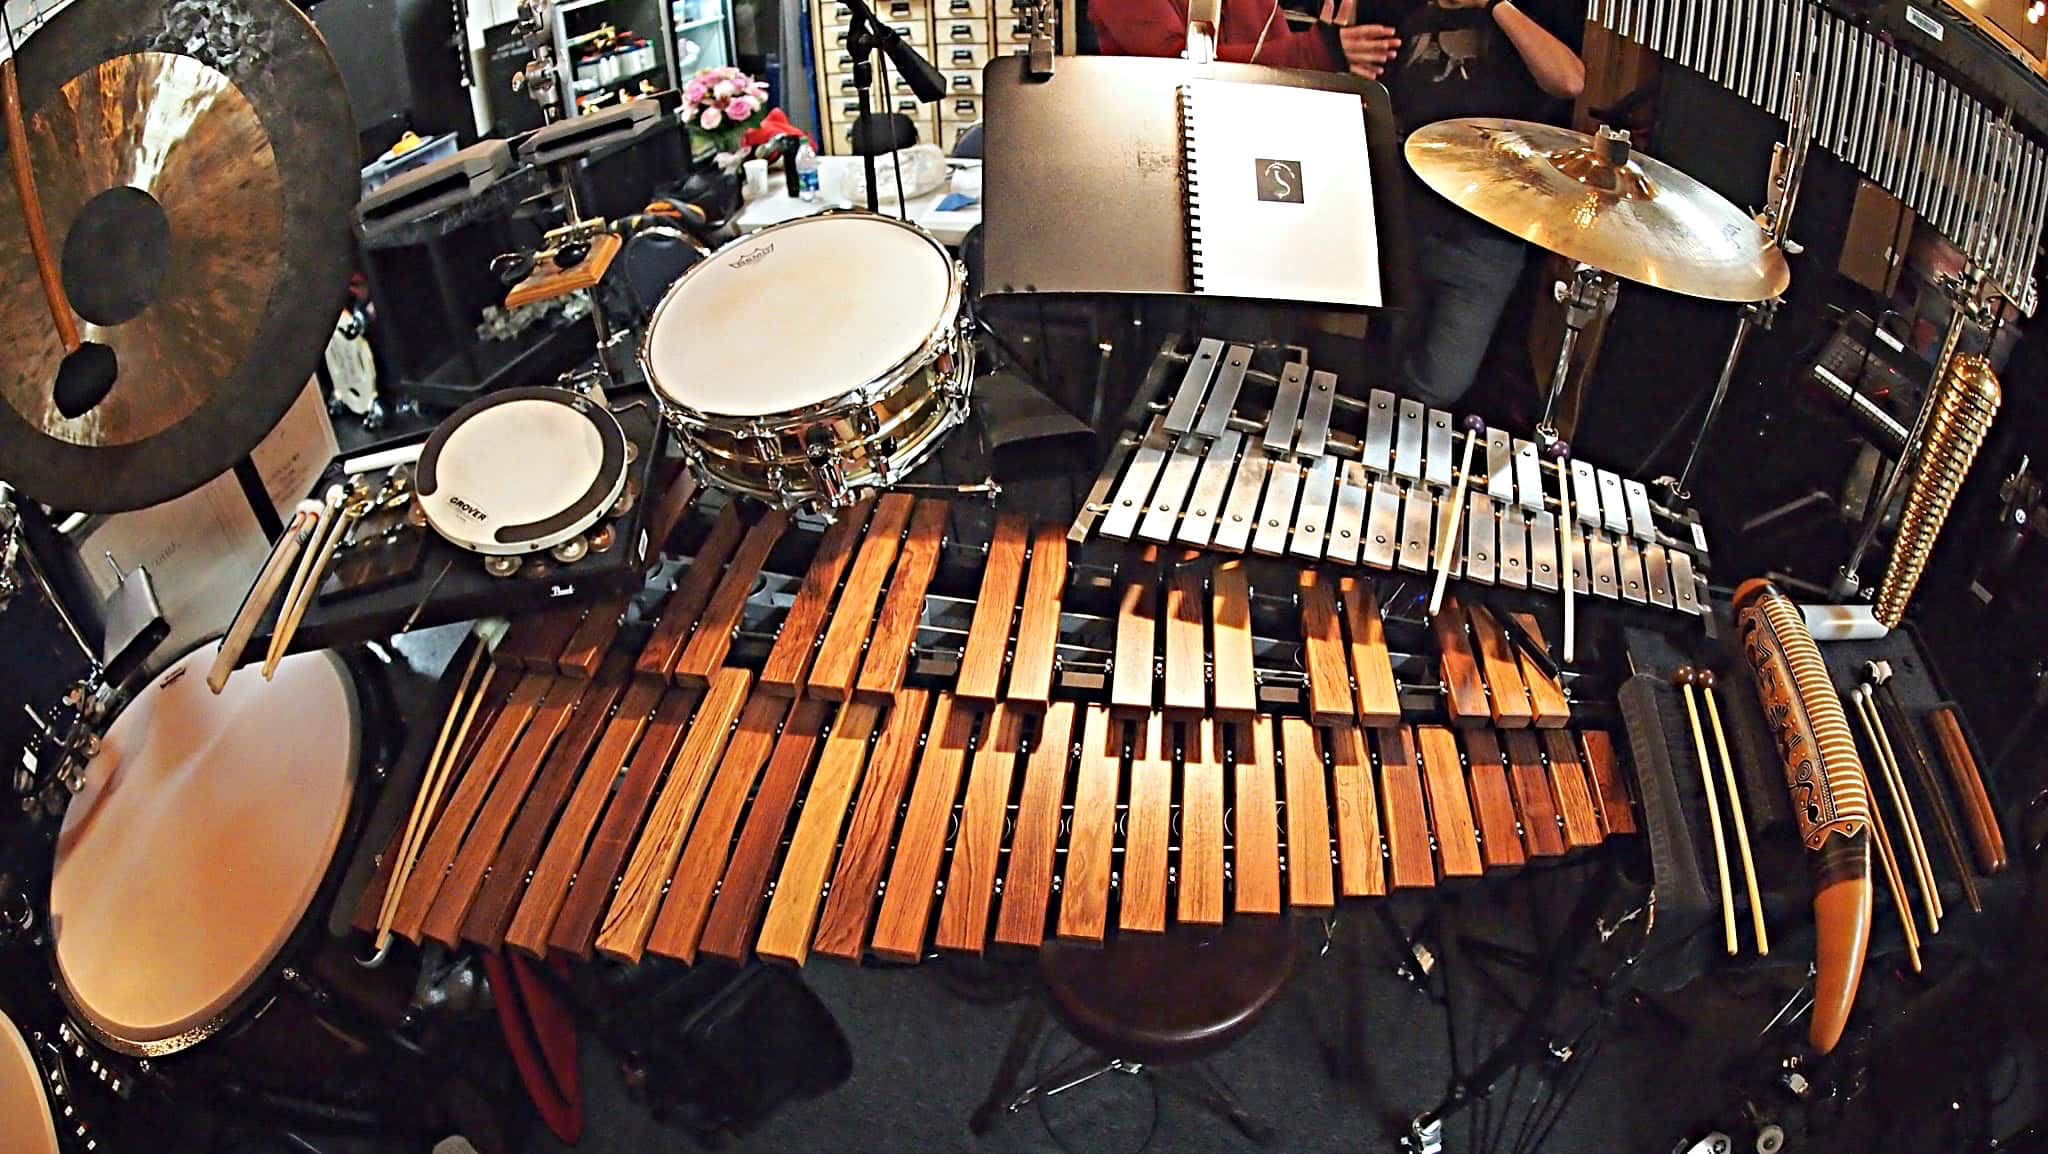 Joshua Mark Samuels' percussion setup for the North American tour of Aladdin at the Paramount Theatre in Seattle, Washington.